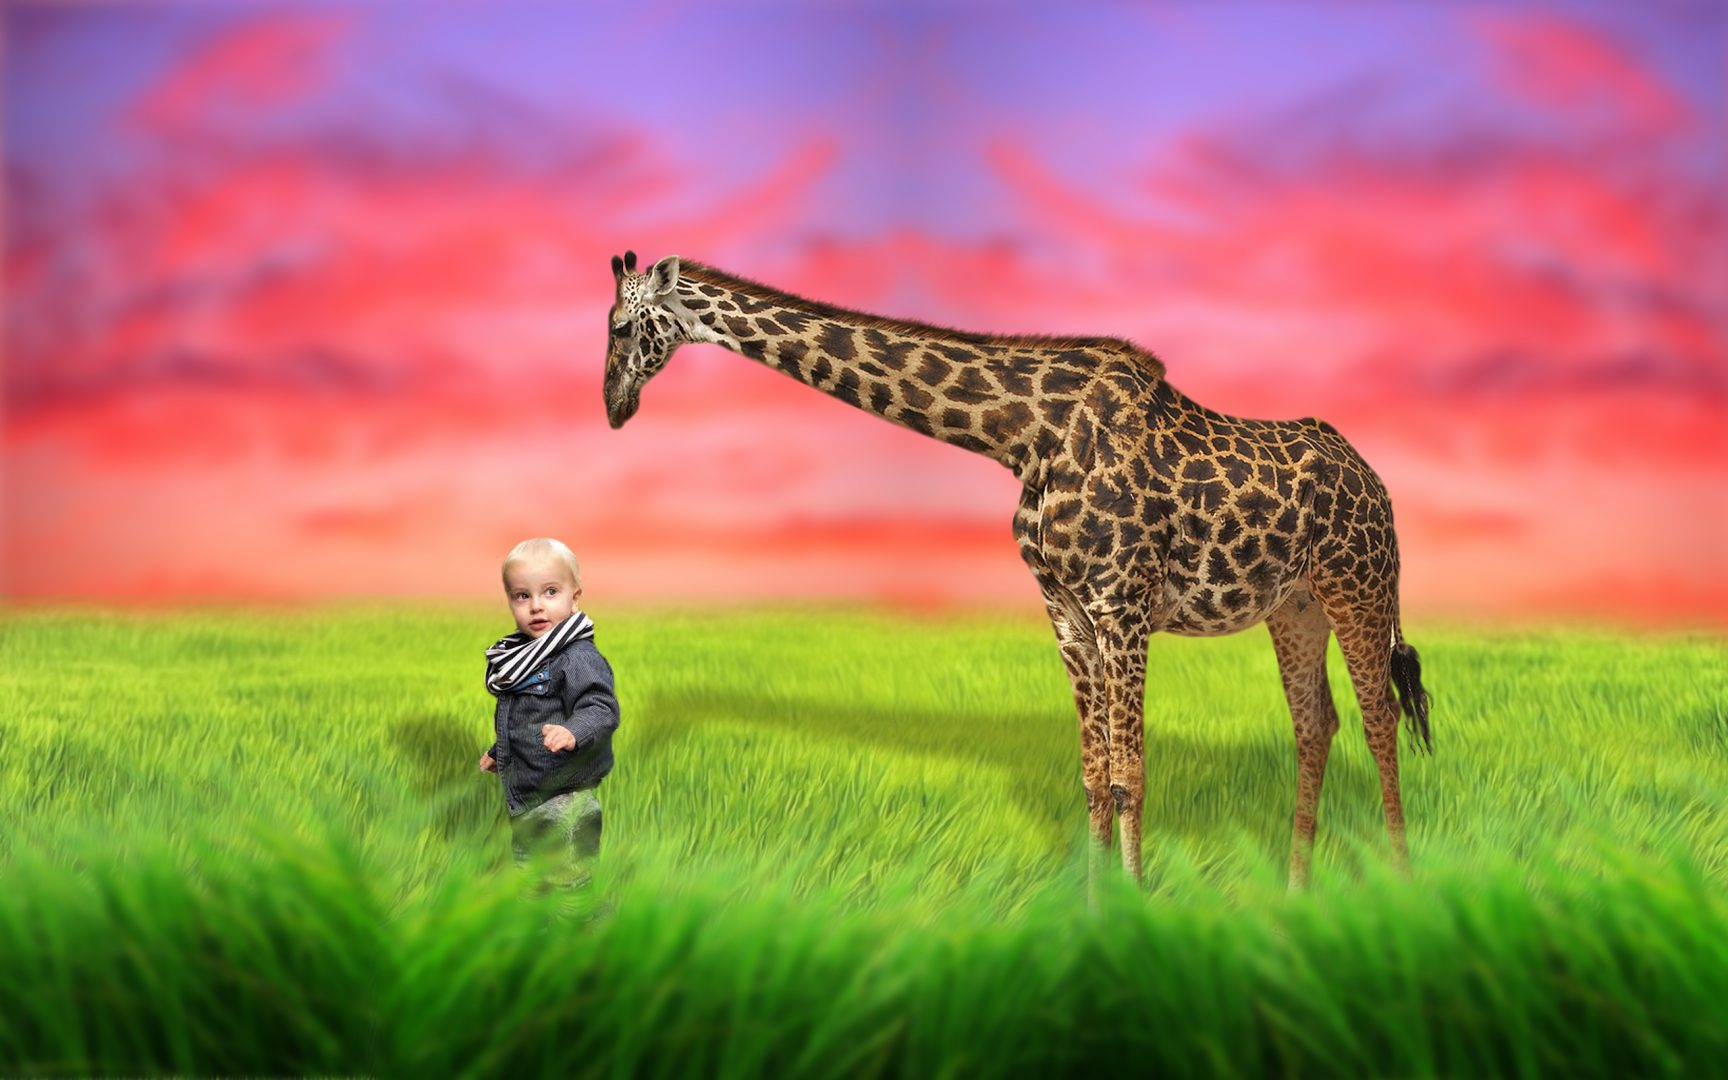 Giraffe11 - Jayno Design - magical pictures & win